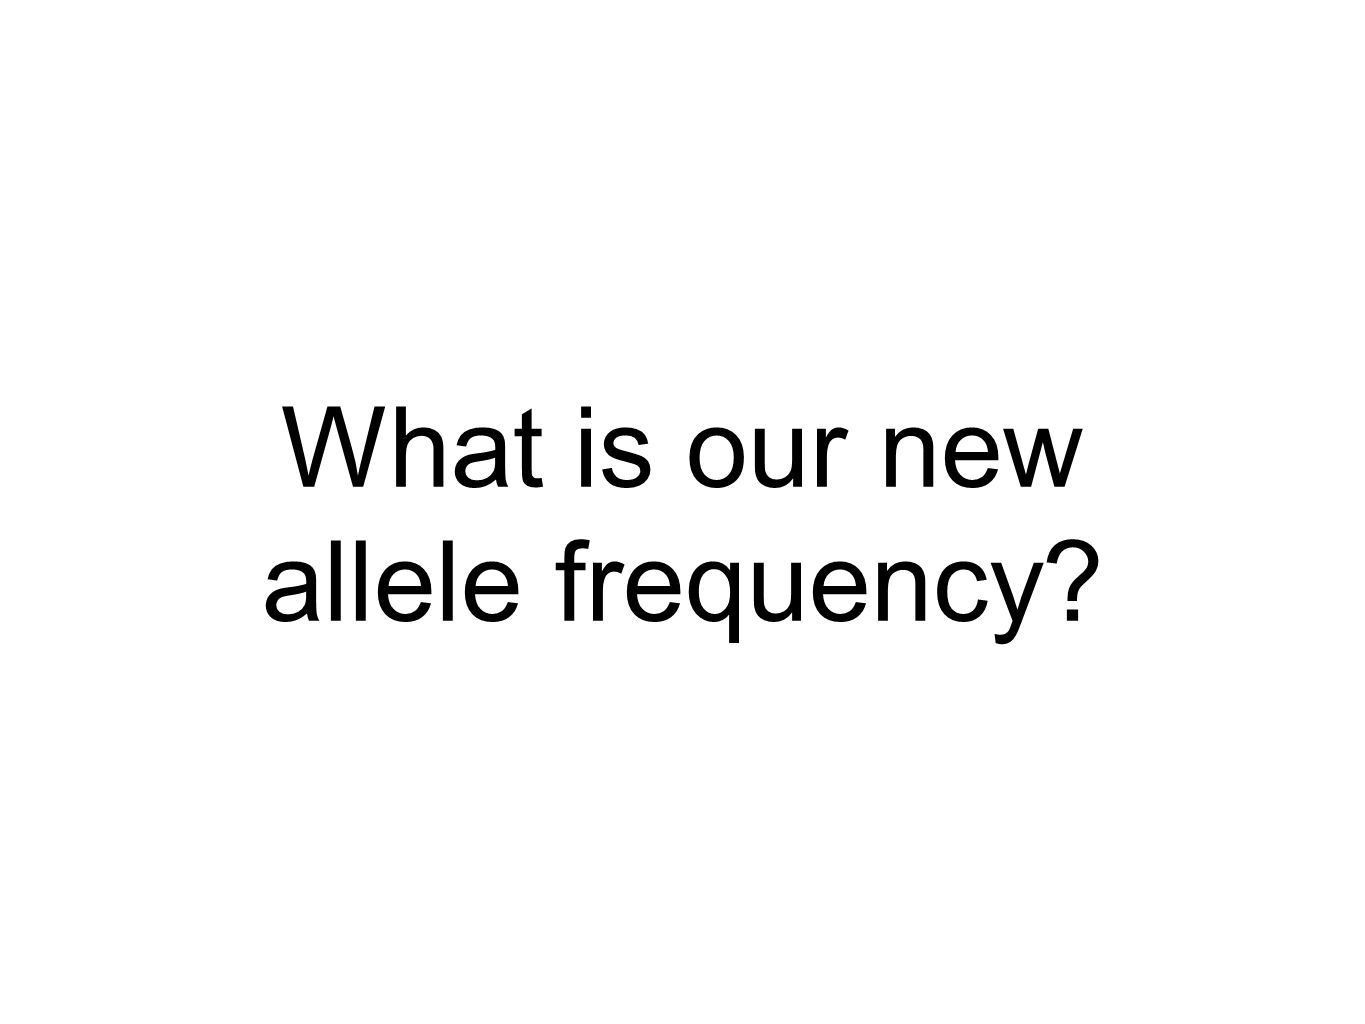 What is our new allele frequency